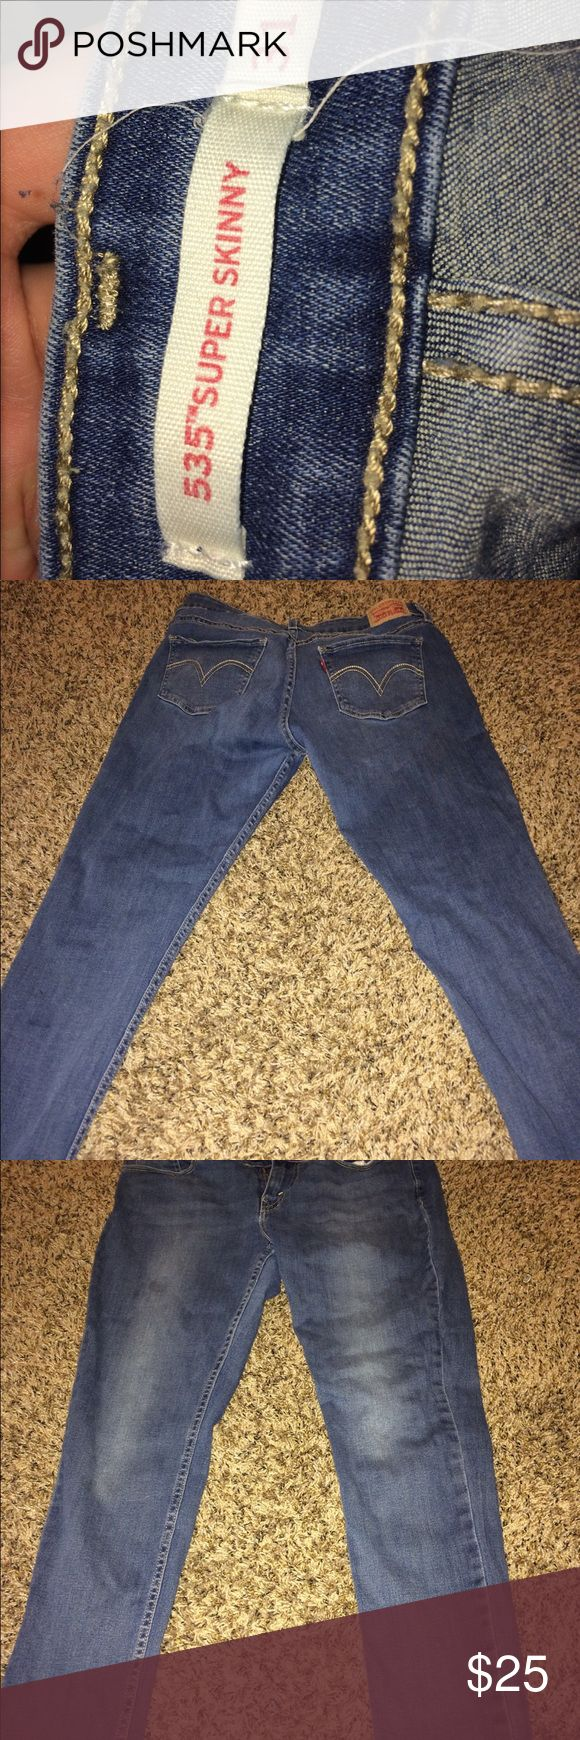 Levi jeans It's good condition but tight levis Jeans Skinny